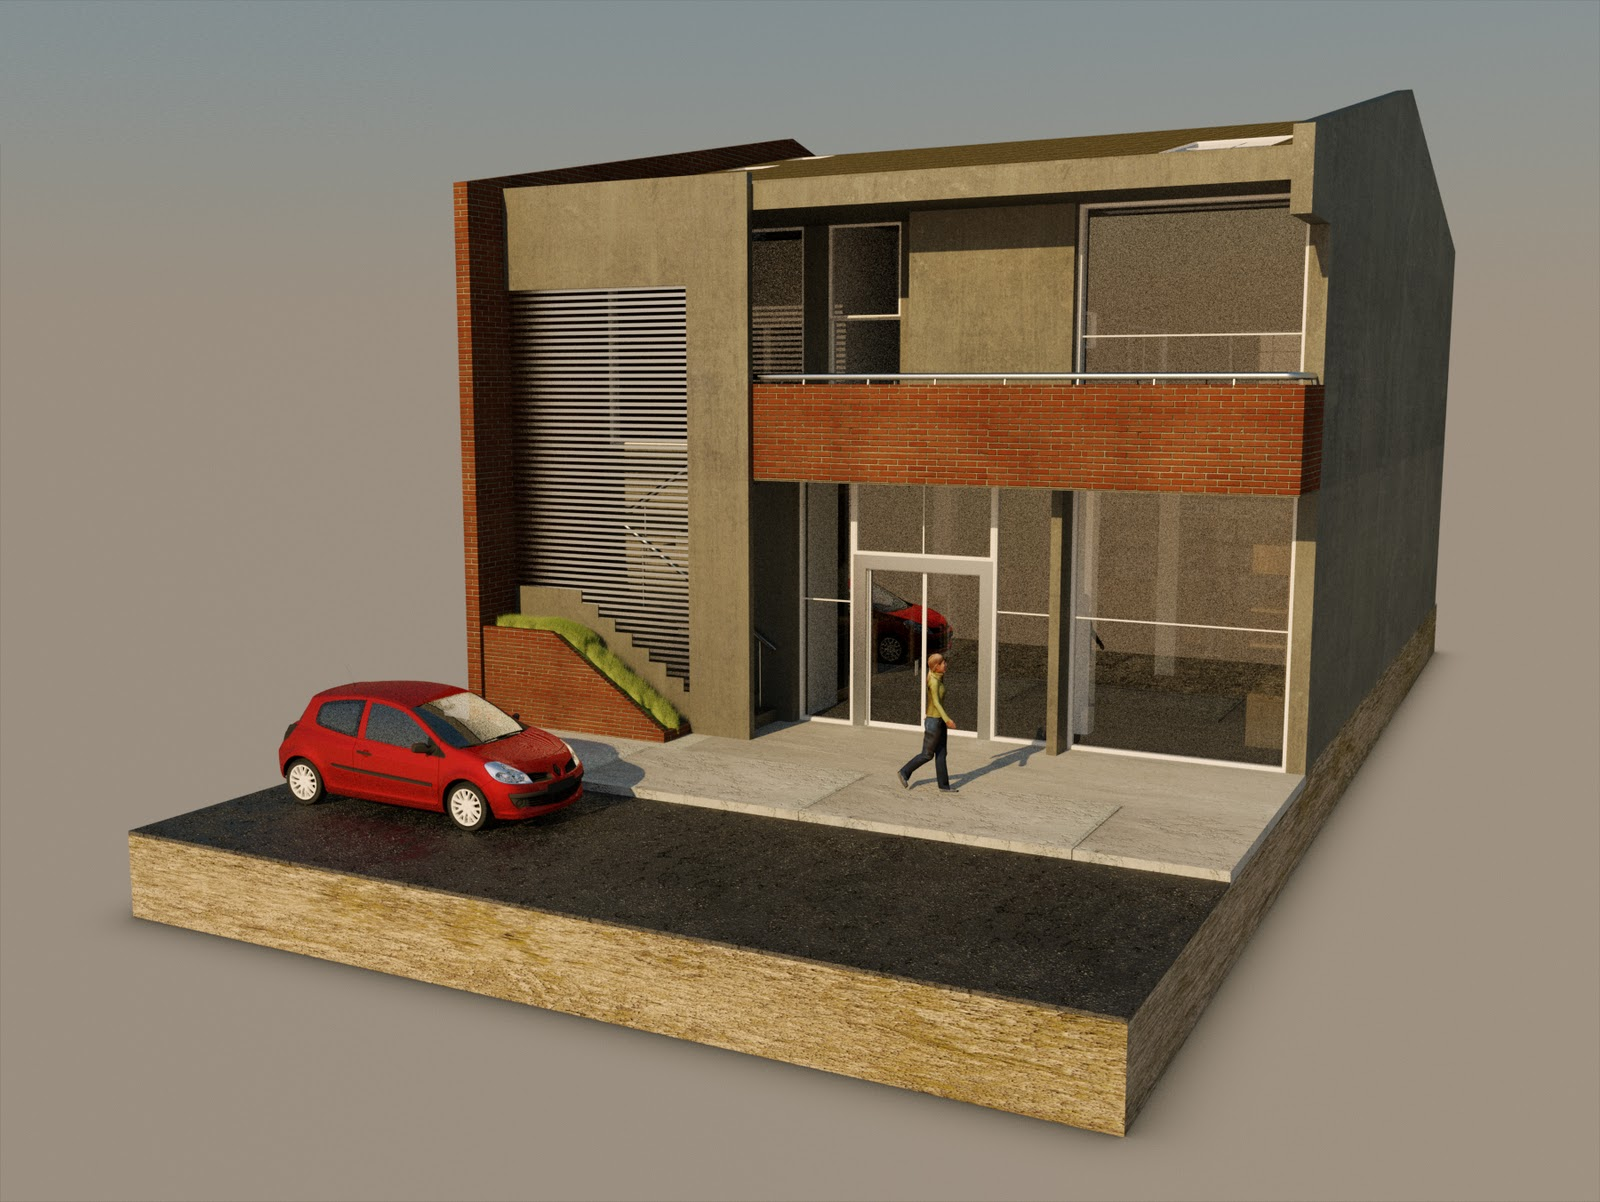 Jtc arquitectura y dise o local comercial papeler a y for Local arquitectura